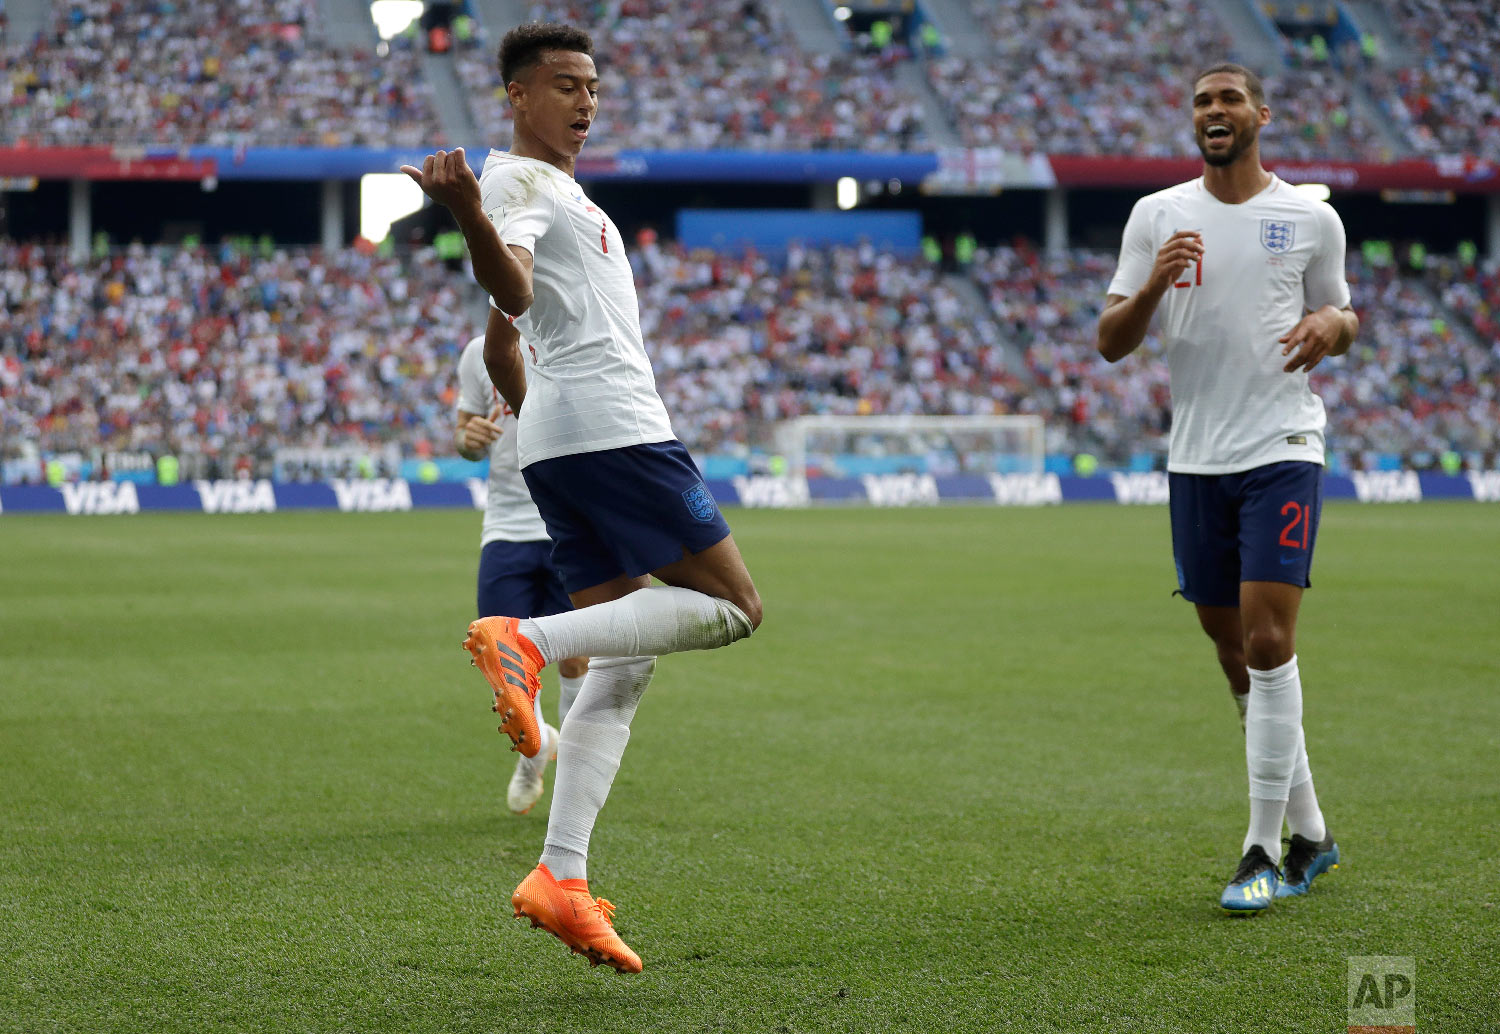 England's Jesse Lingard reacts as he celebrates after scoring his team's third goal during the group G match between England and Panama at the 2018 soccer World Cup at the Nizhny Novgorod Stadium in Nizhny Novgorod , Russia, Sunday, June 24, 2018. (AP Photo/Matthias Schrader)